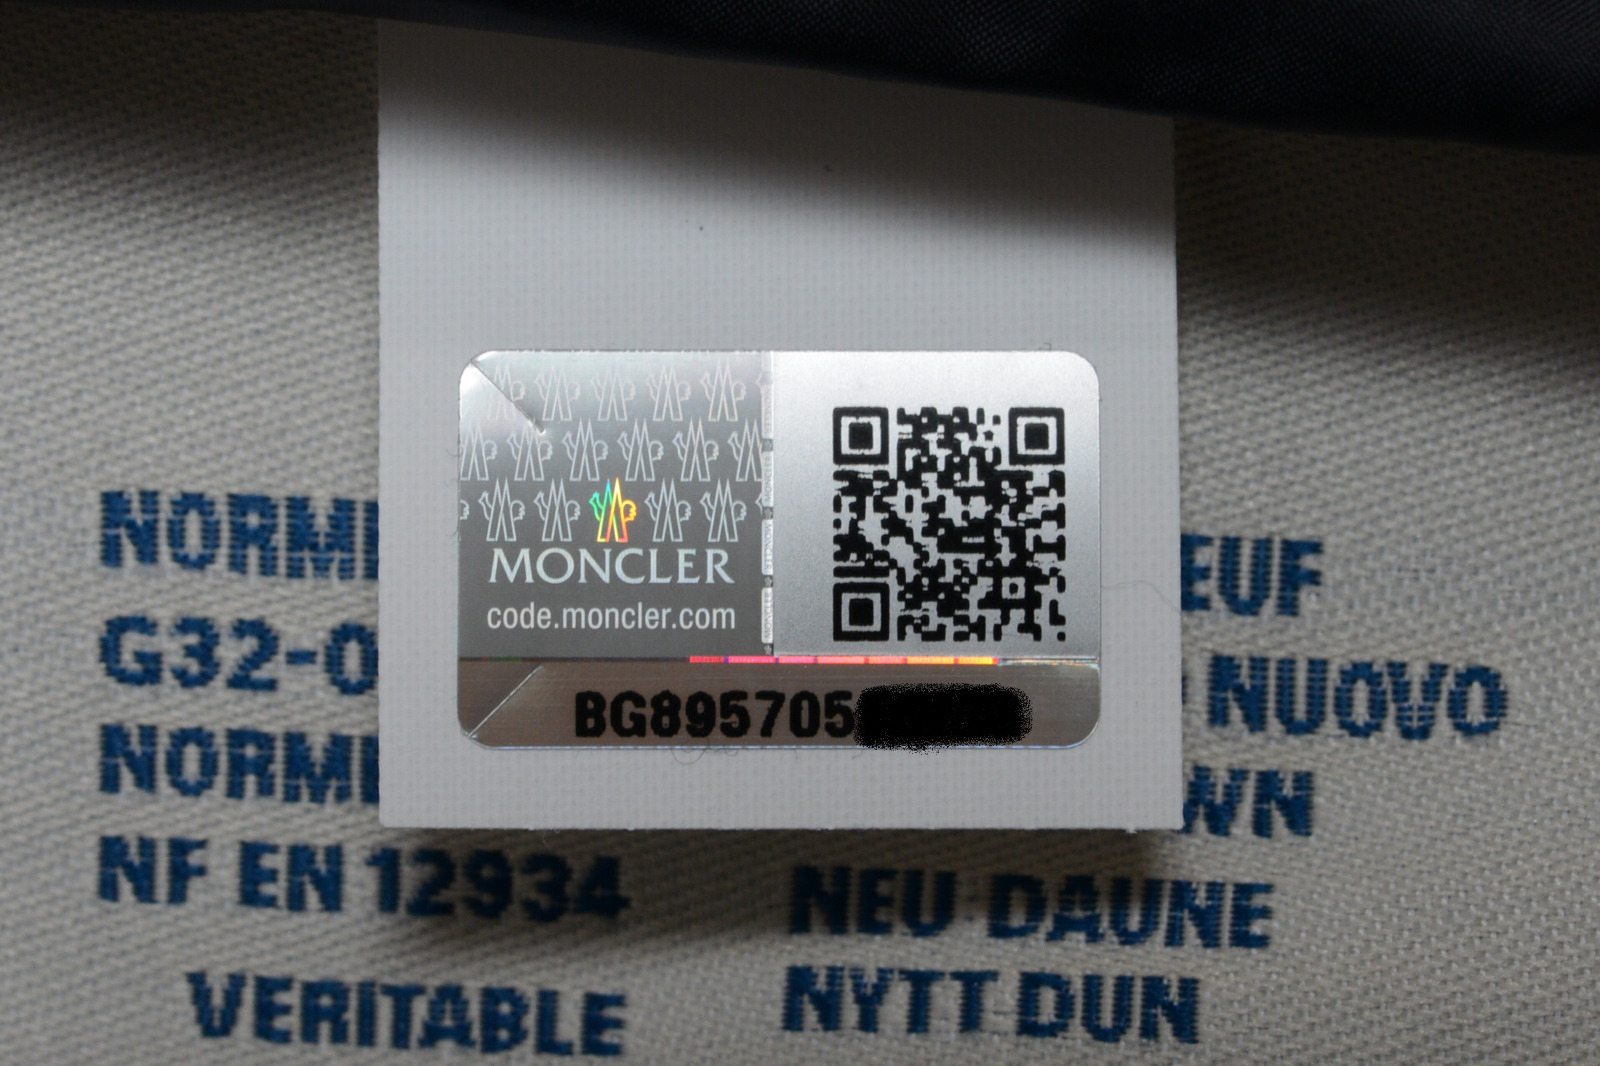 check moncler authenticity code